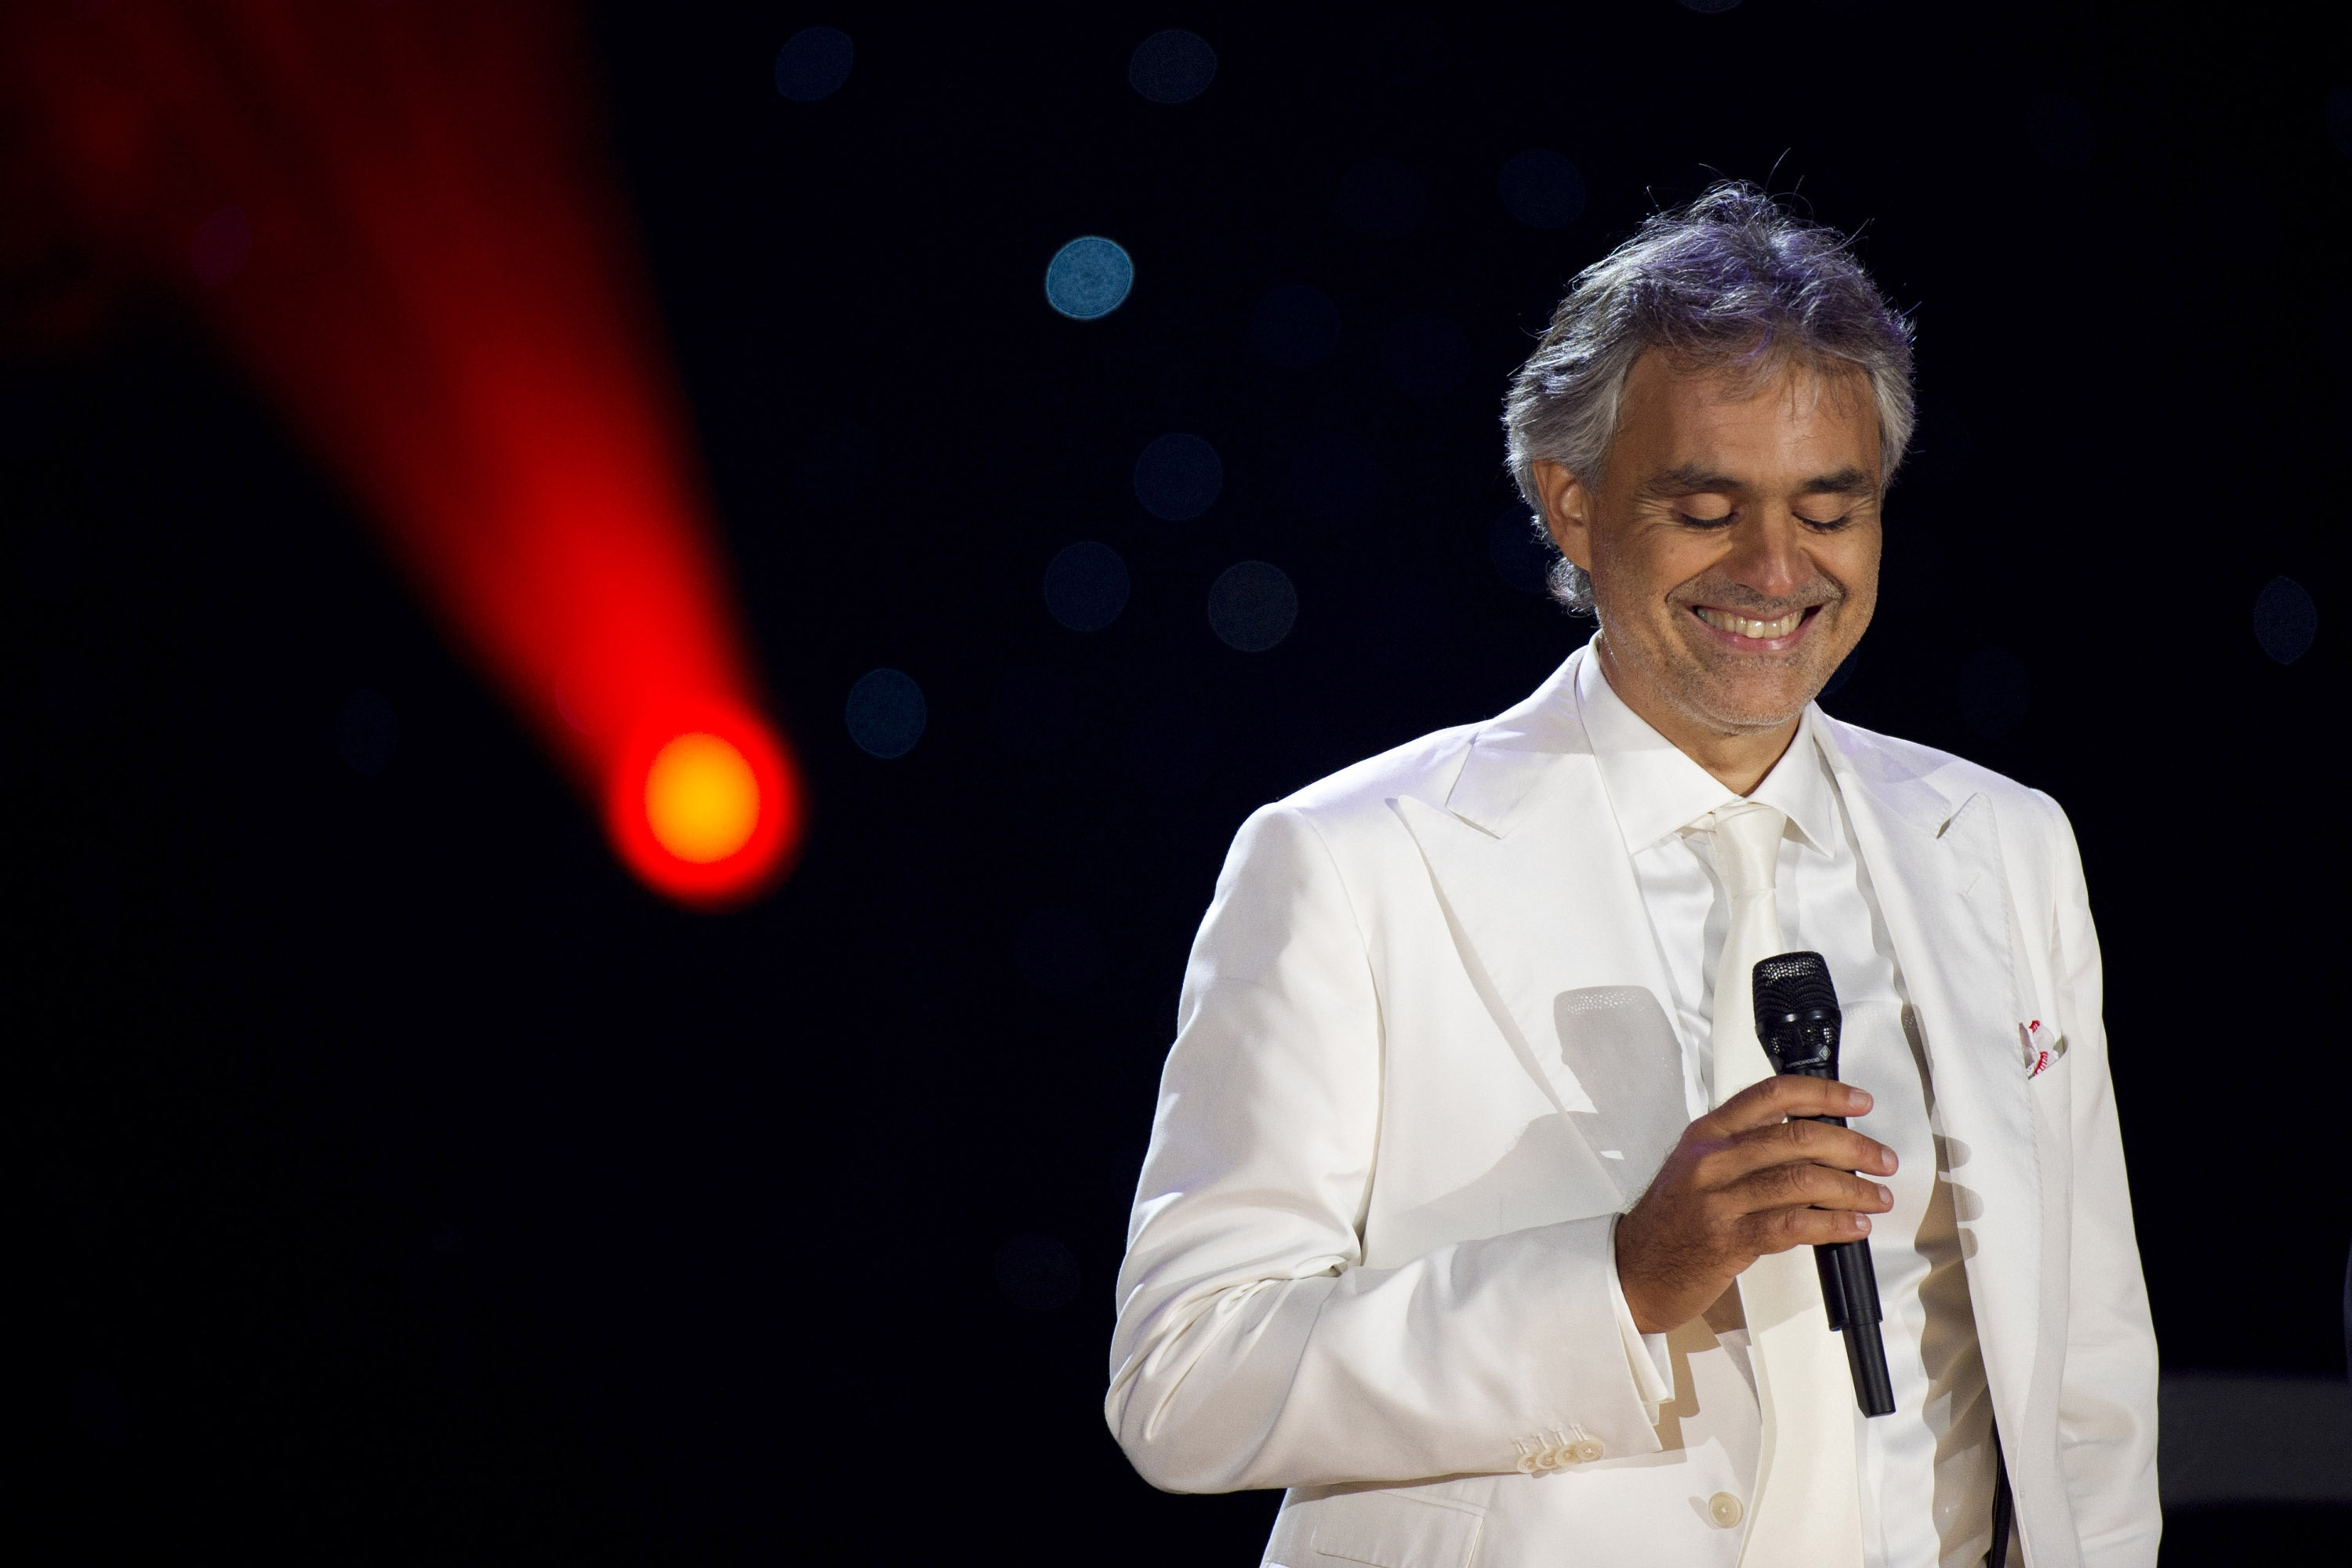 Andrea Bocelli's master's thesis discusses the value and meaning of opera at the beginning of the third millennium.